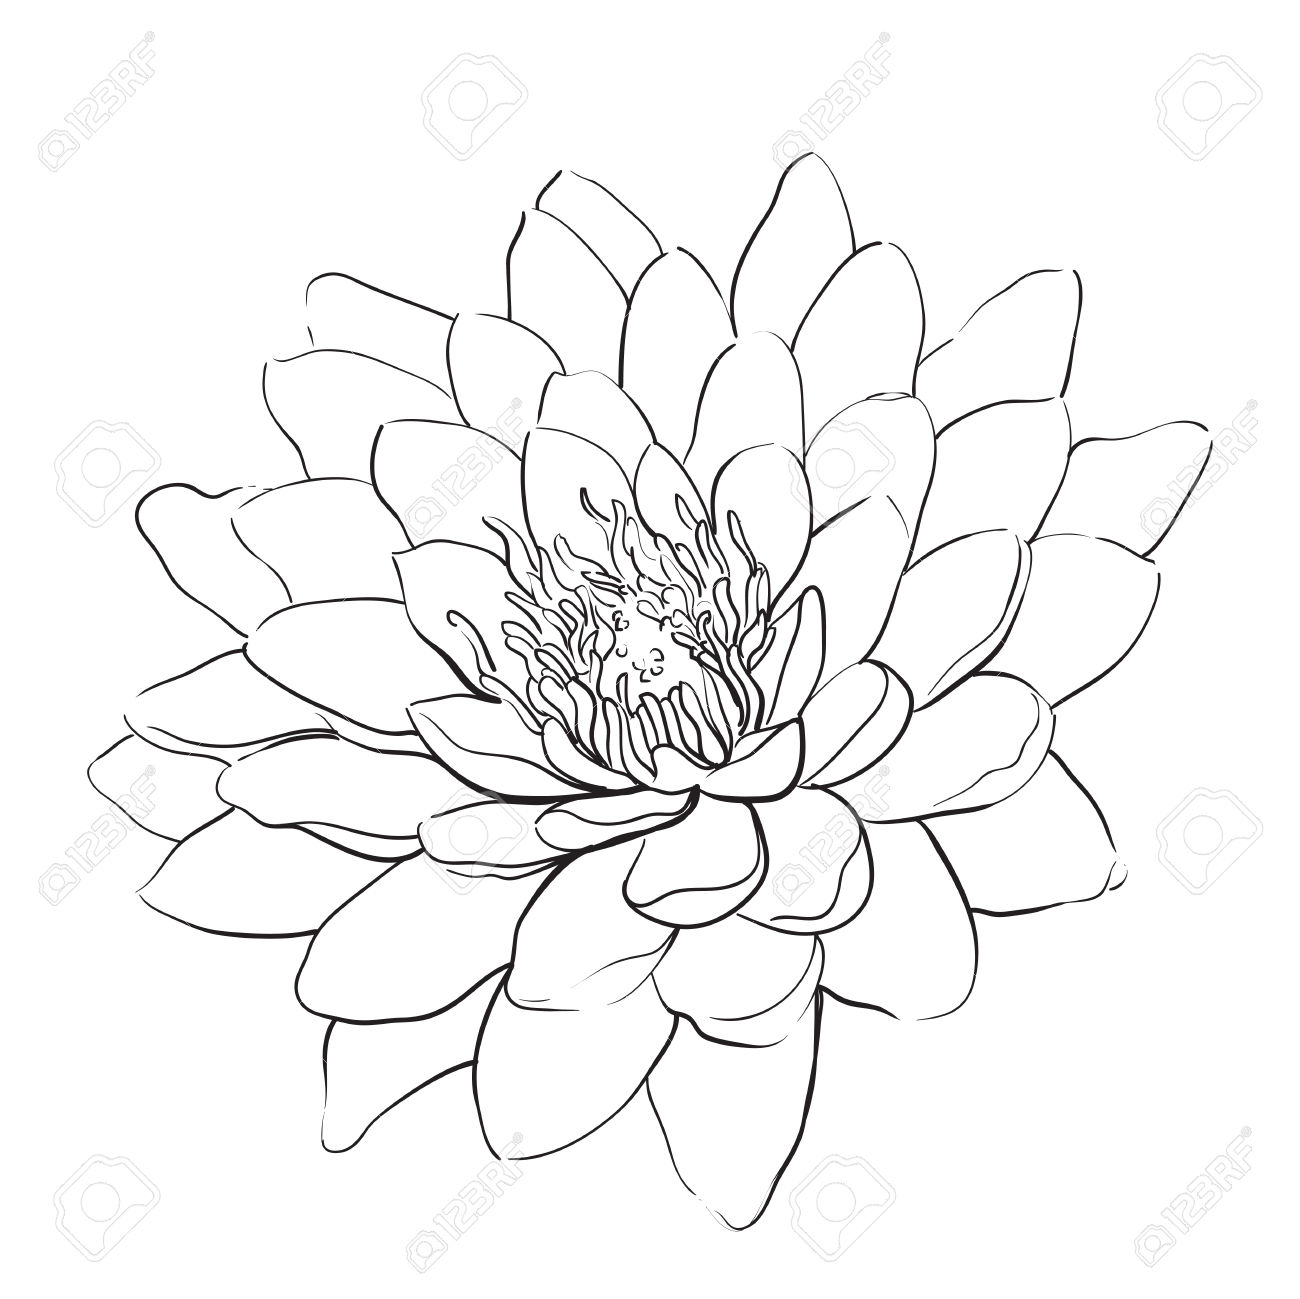 1300x1299 Lotus Flower Outline Drawing Outline Lotus Flower On White